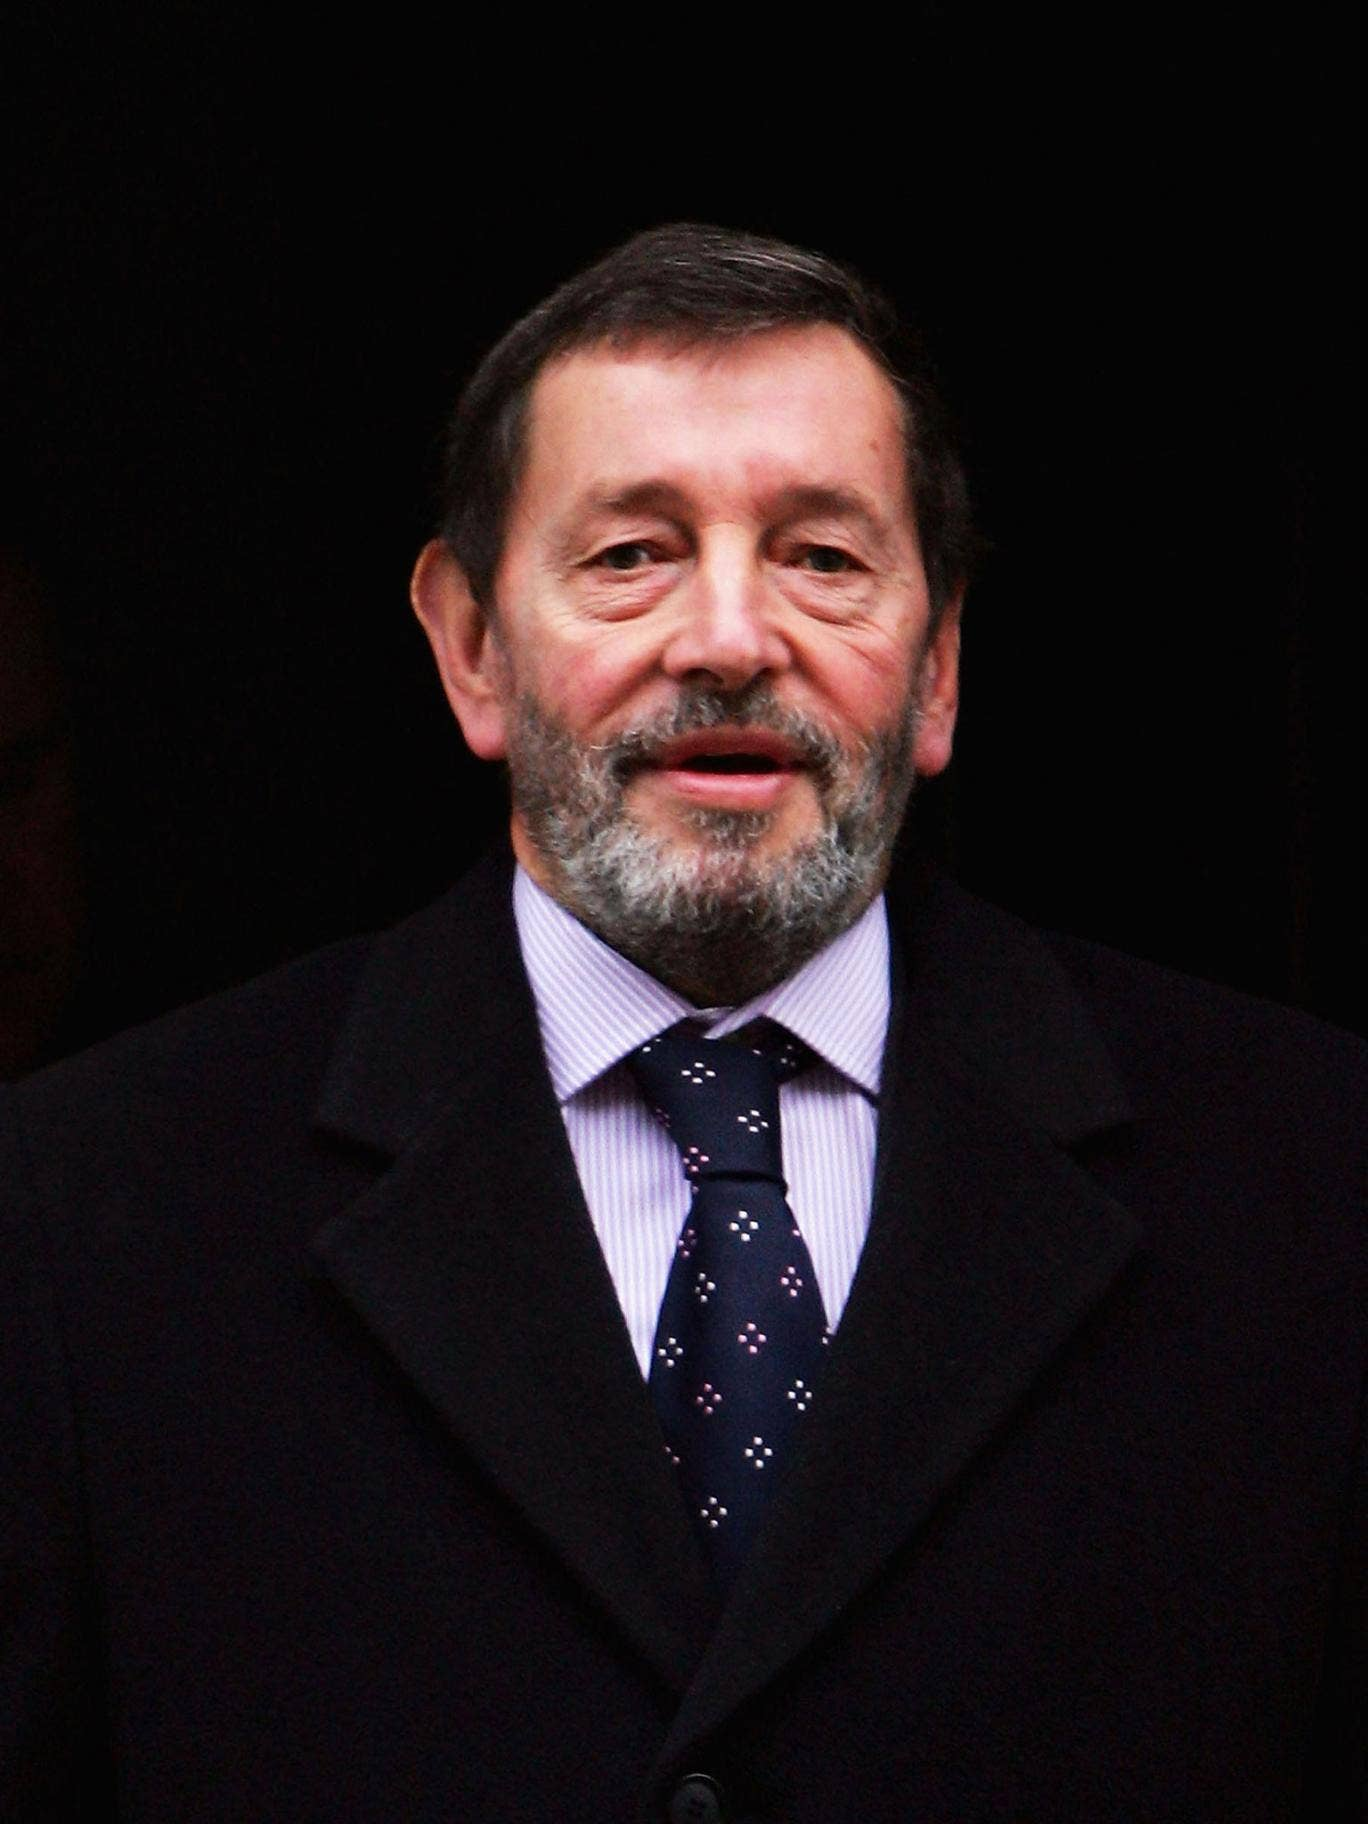 As Home Secretary, David Blunkett recorded a meeting in his office with Andy Coulson in which the News of the World editor challenged the politician over an affair with a married woman